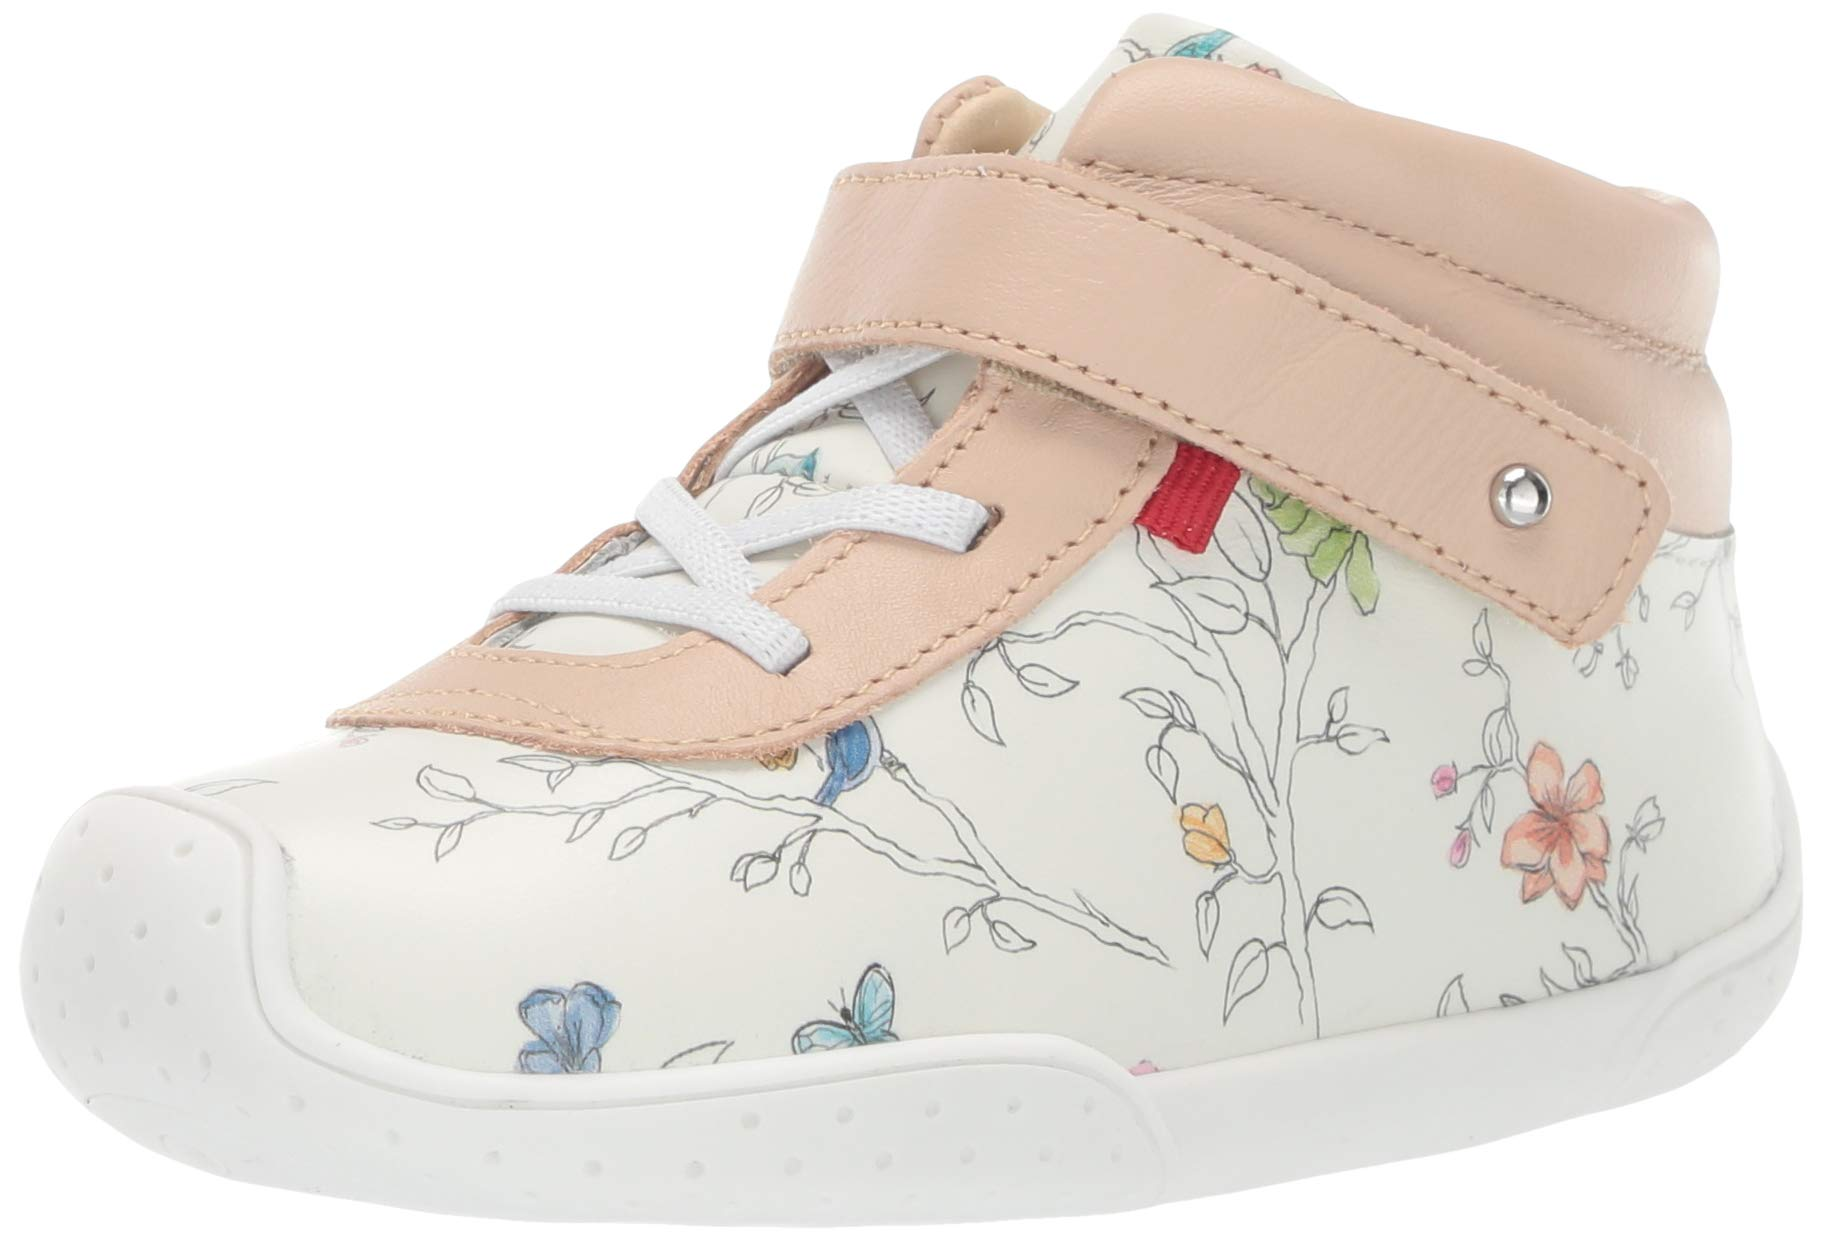 MARC JOSEPH NEW YORK Toddlers Baby Boys/Girls Leather Made in Brazil Floral Sneaker Loafer, White Blush, 8 M US by MARC JOSEPH NEW YORK